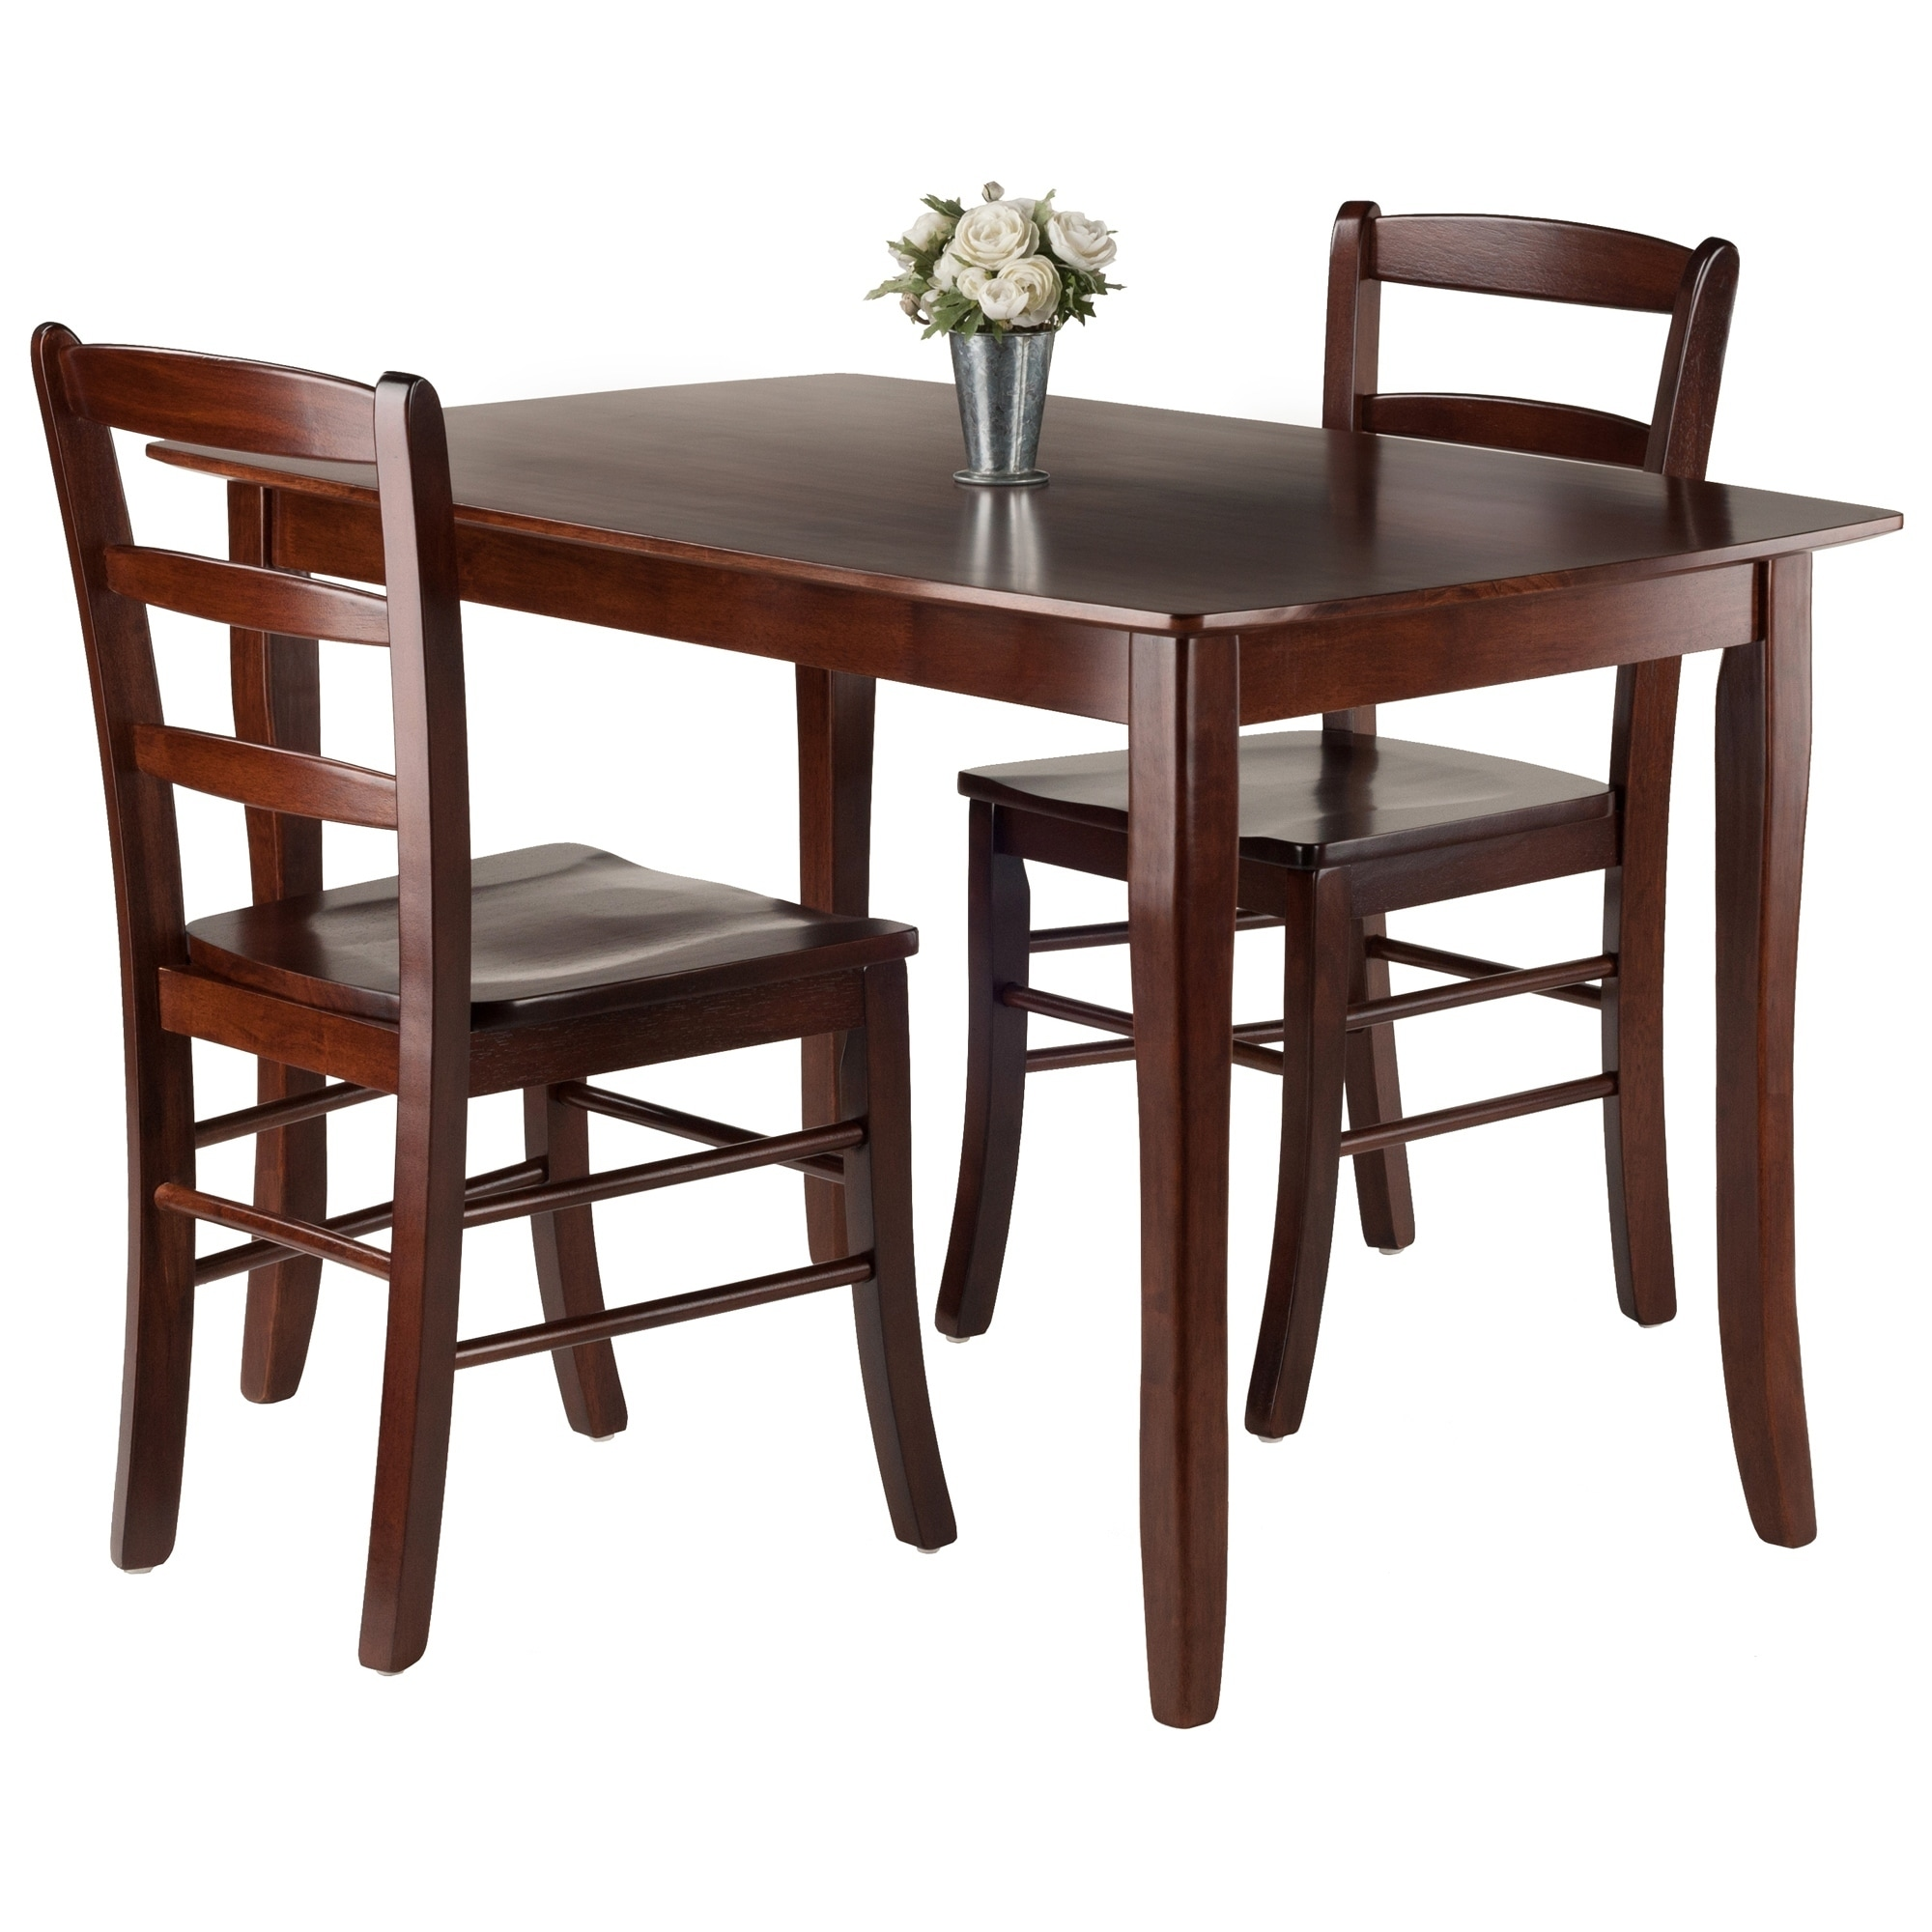 e89bd0a19de51 Shop Inglewood 3-PC Set Dining Table w/ 2 Ladderback Chairs - Free Shipping  Today - Overstock - 20735368